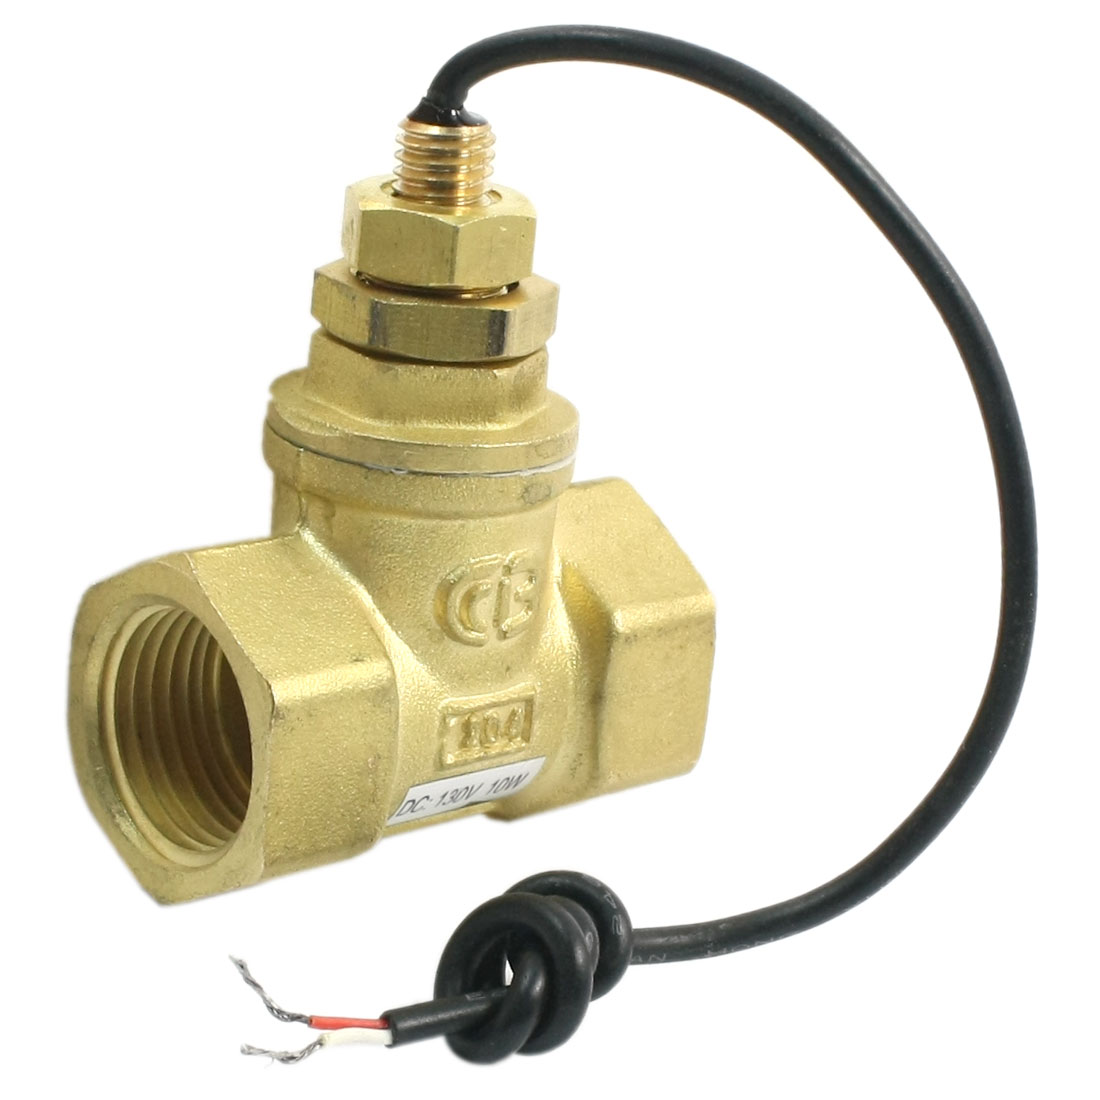 SEN-HS15 10W 3-8L/Min 1/2PT In-line Adjustable Piston Water Flow Sensor Switch Flowmeter